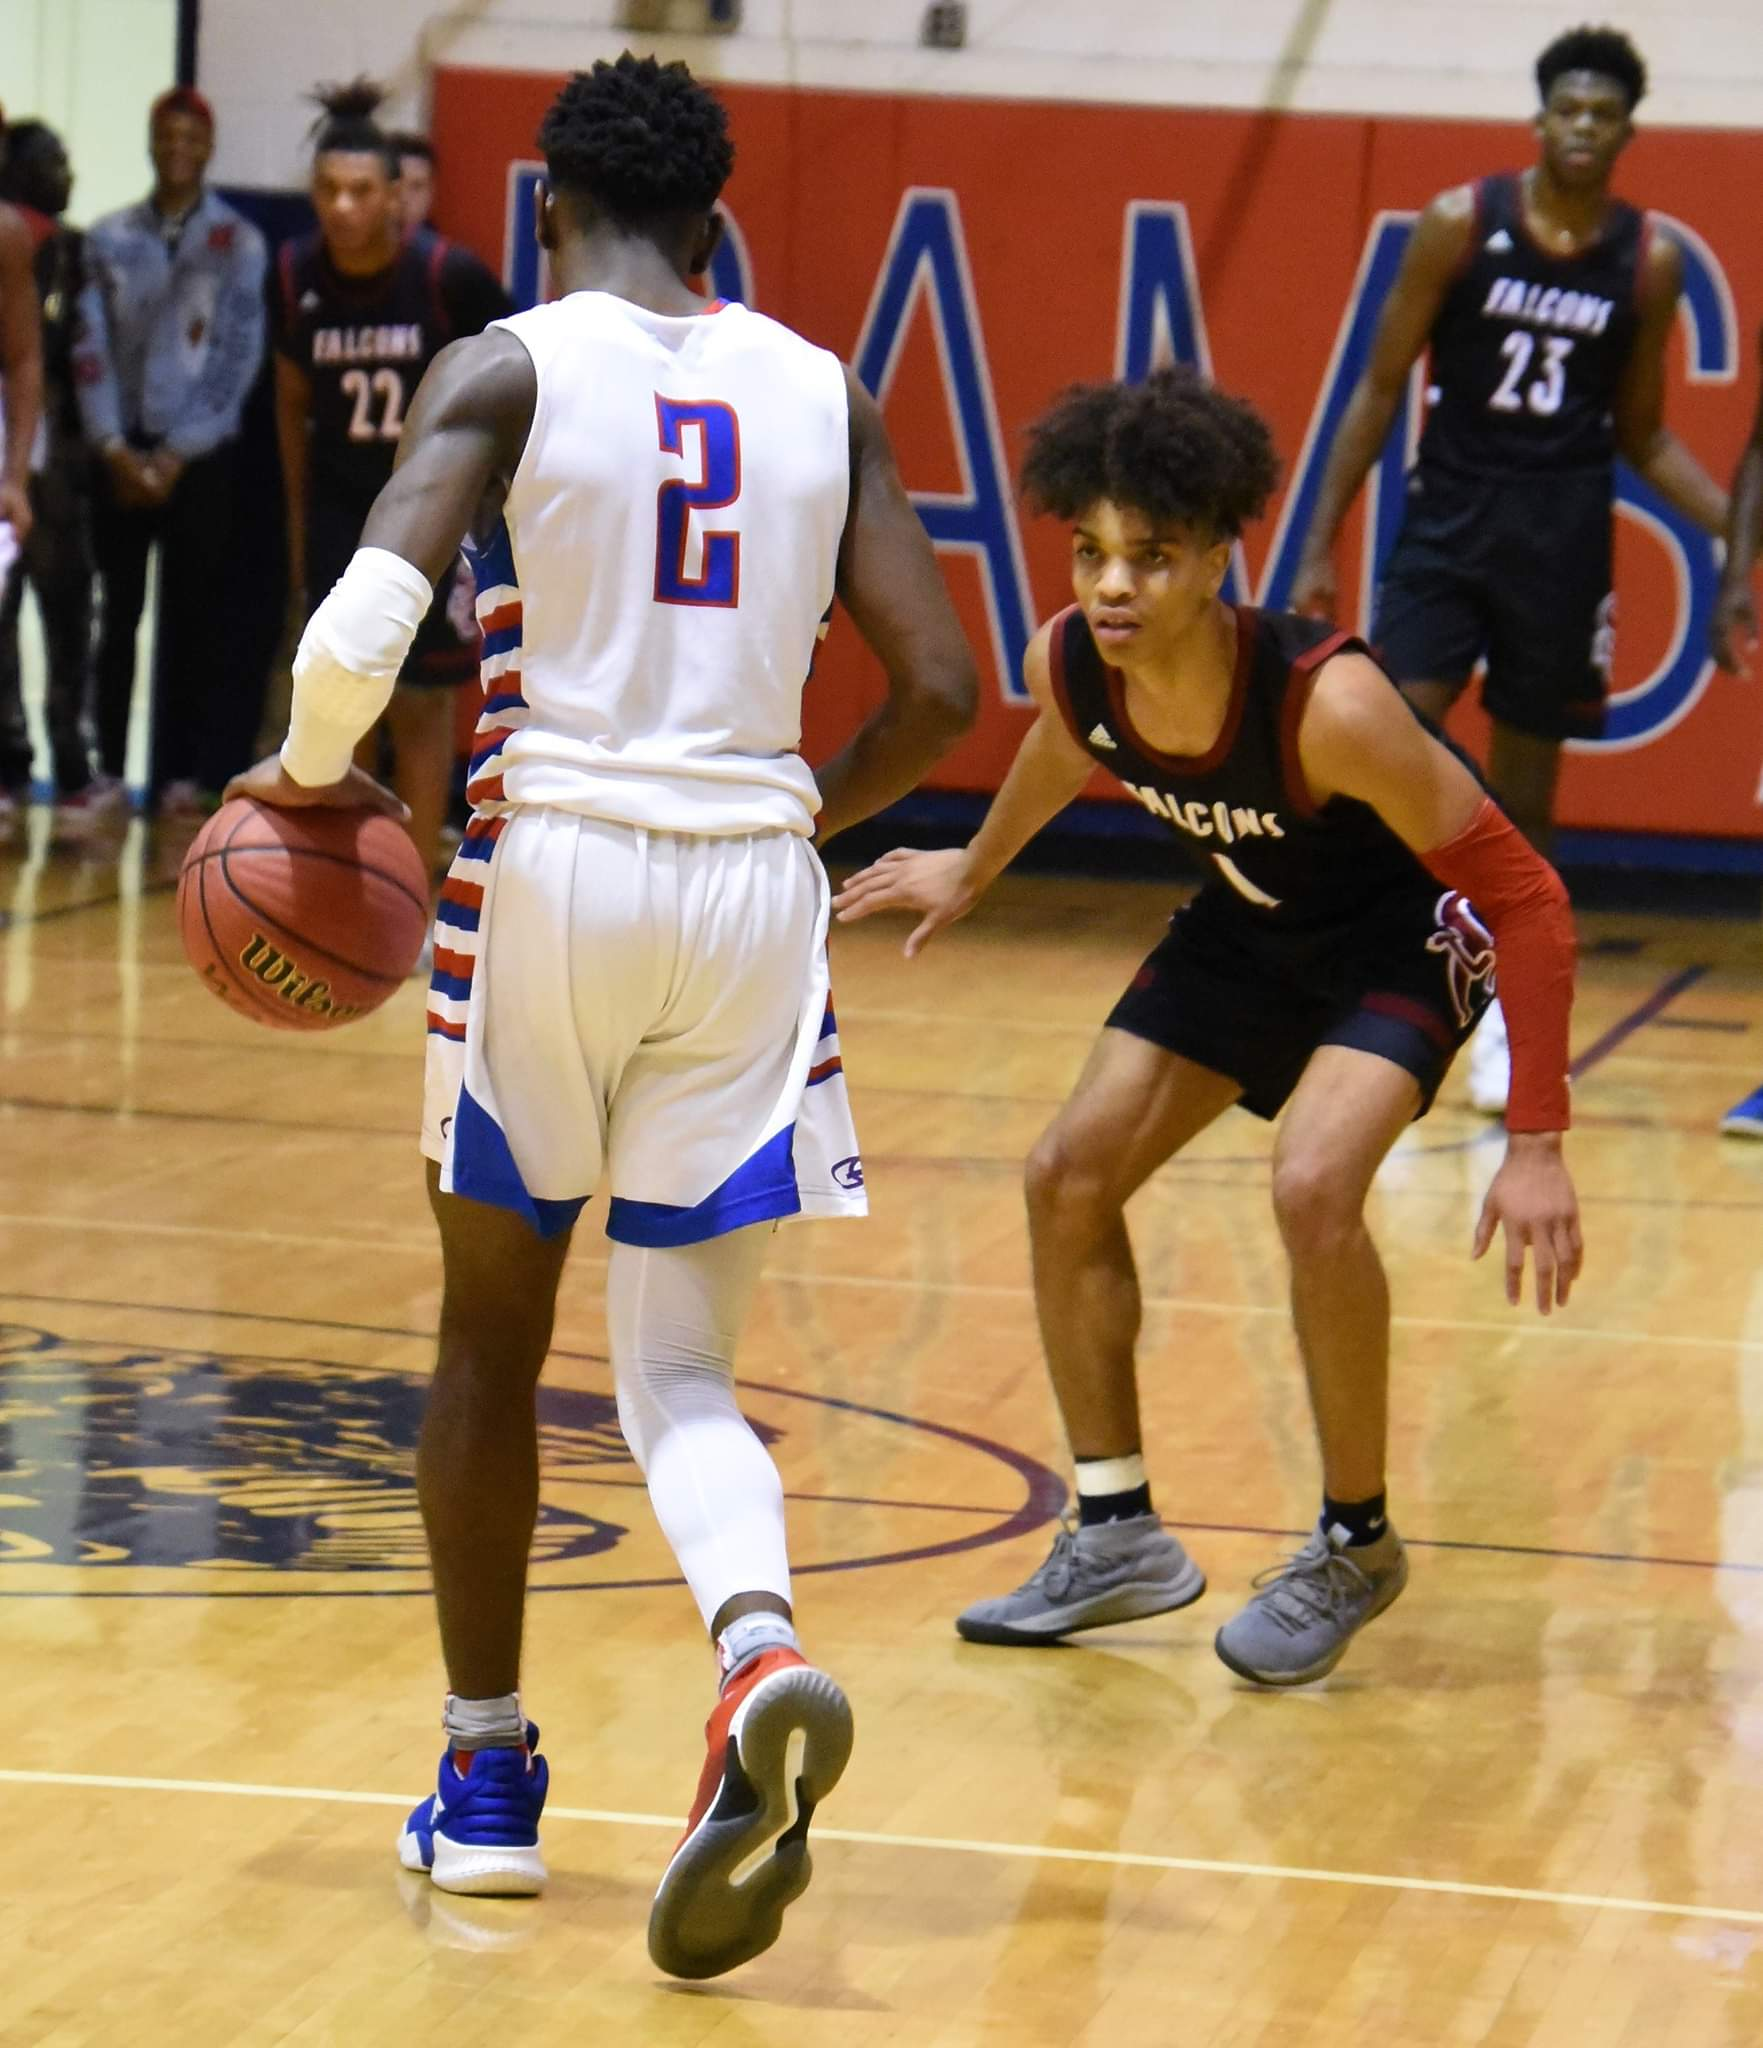 """South Central's Shykeim Phillips defends Greene Central's Hyssan Hudson during Tuesday's game. Photo by William """"Bud"""" Hardy / Neuse News"""